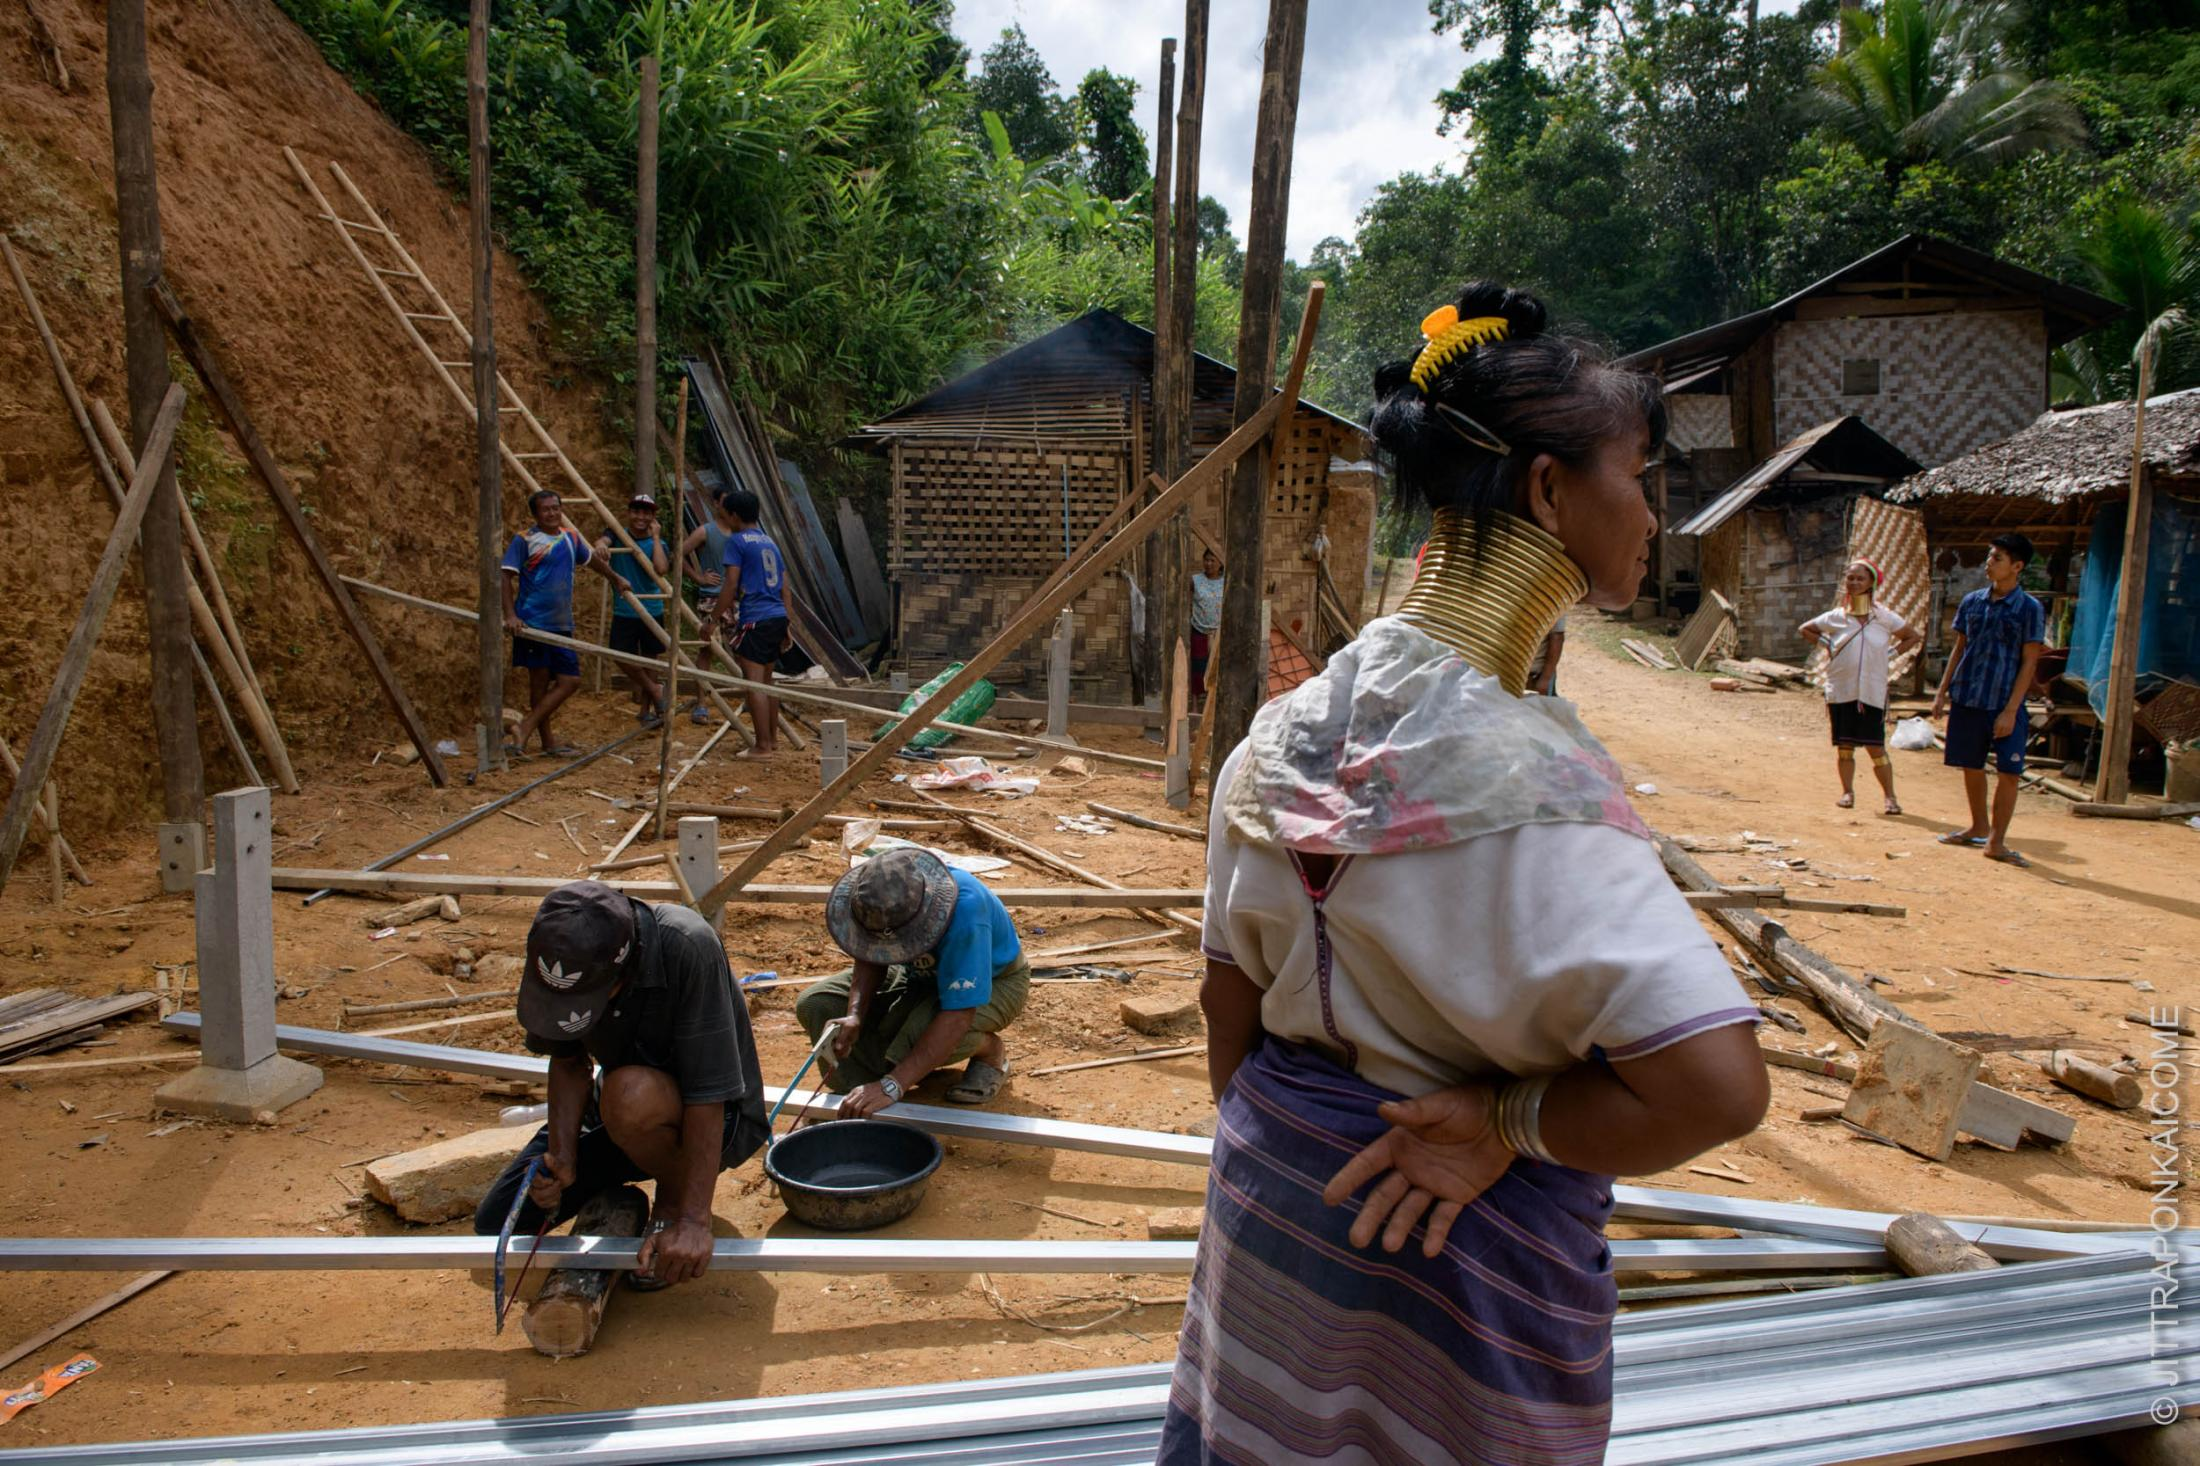 Villagers gathered helping to build a house for their neighbor, the Kayan Long Neck. Their house was under construction during the COVID-19.